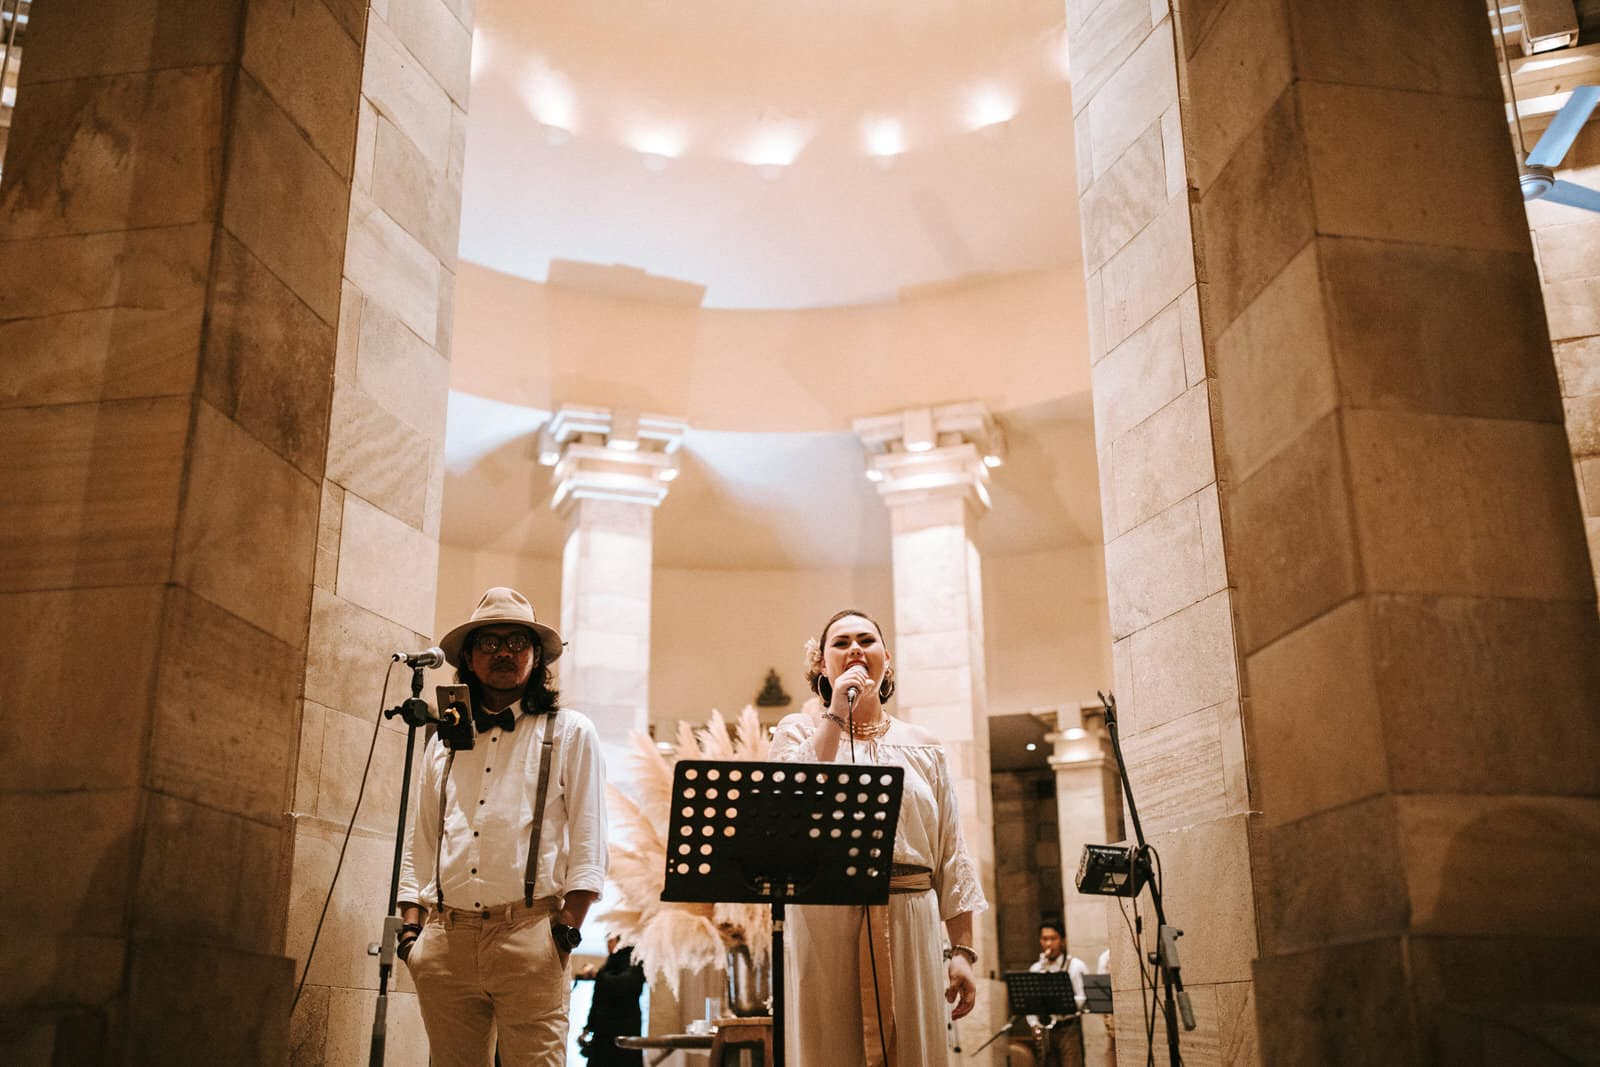 A women is singing and standing next to another singer in front of huge columns.